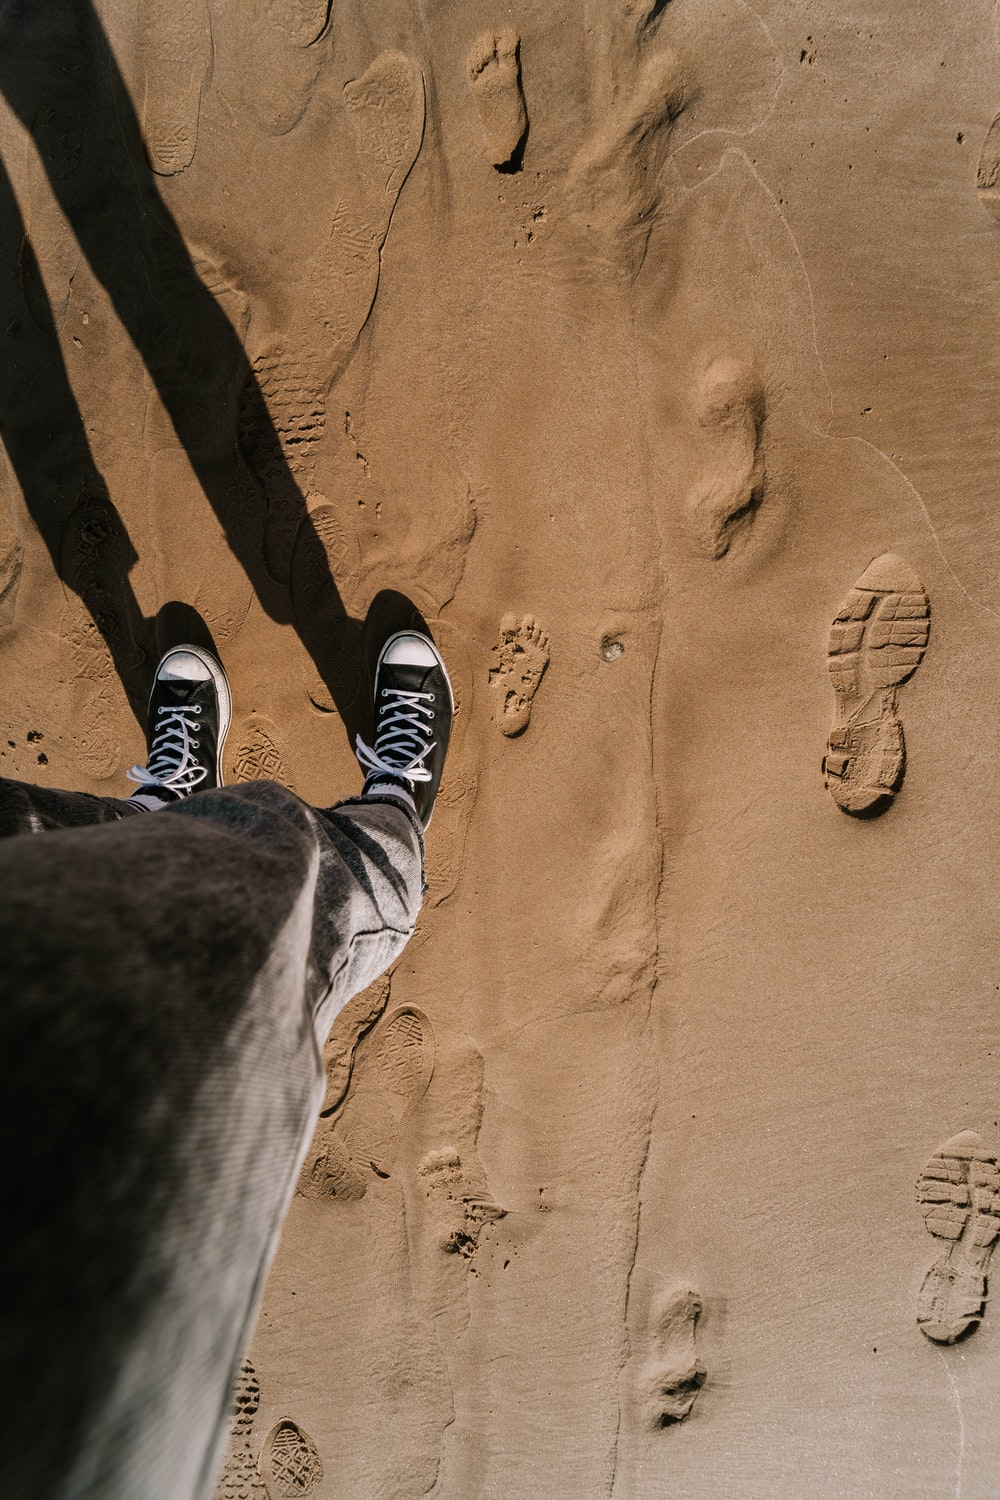 person in black pants and black and white sneakers standing on brown sand